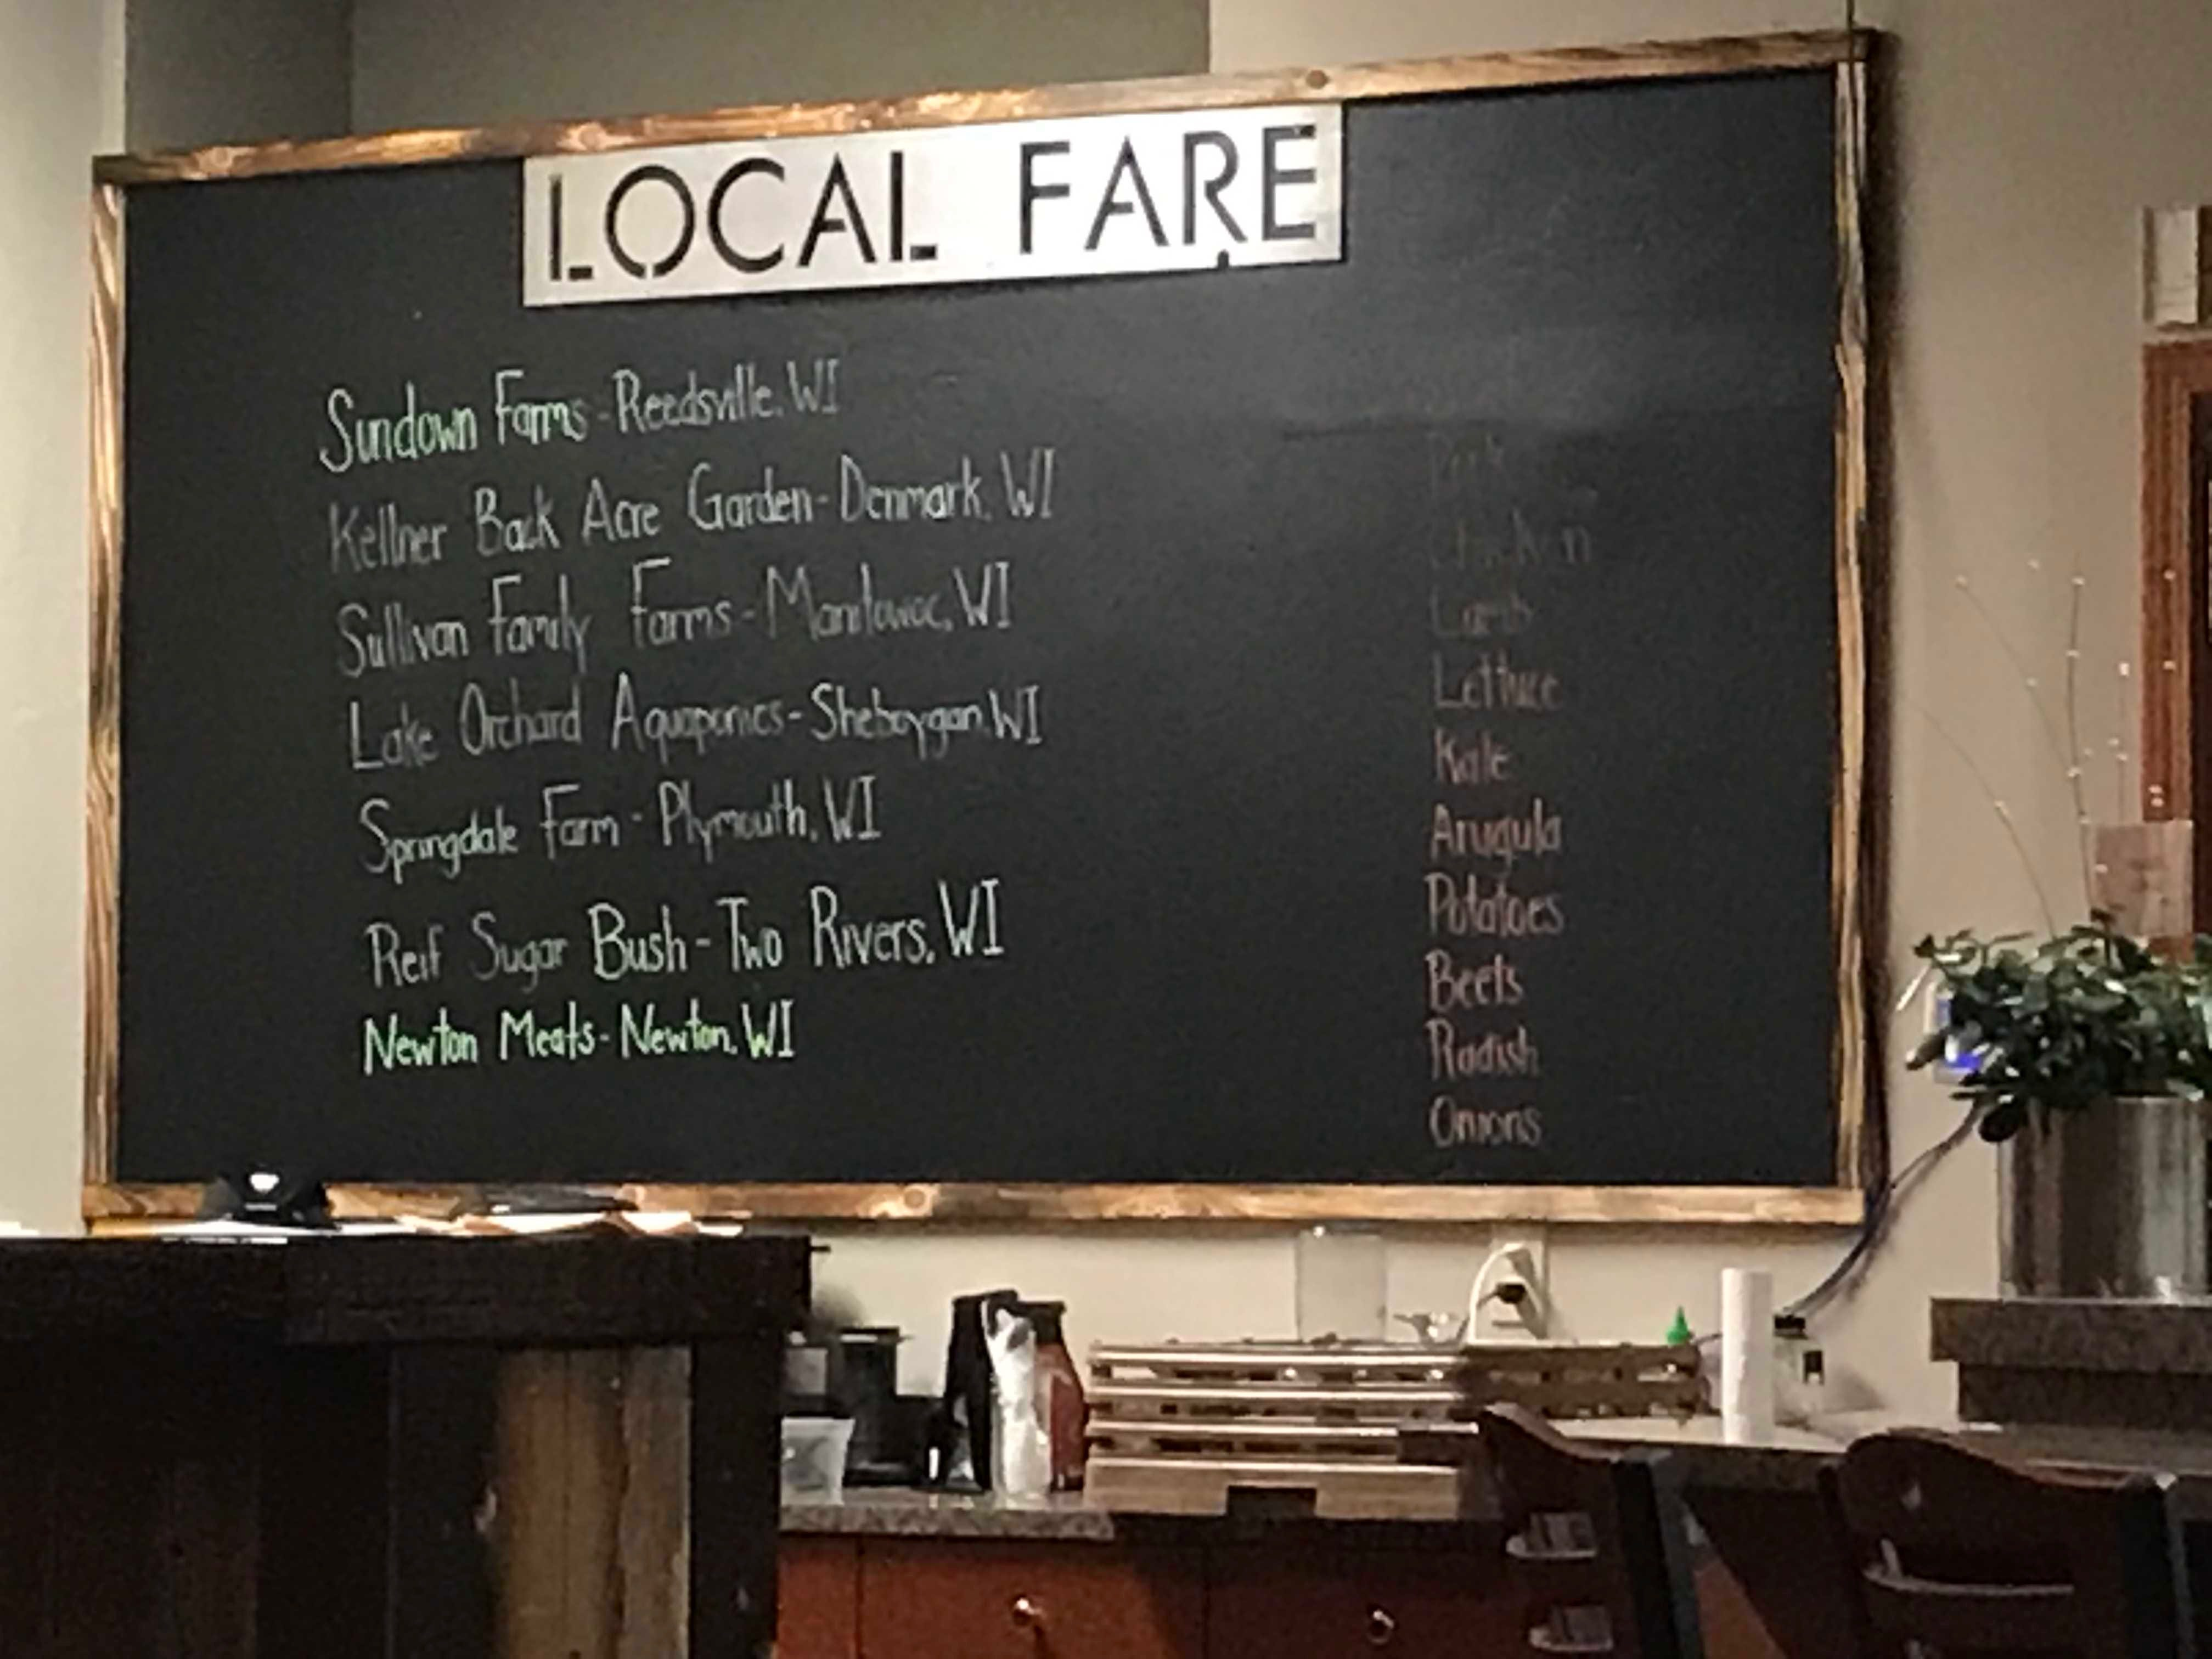 This board near the entrance to Holla, a new farm-to-table restaurant in Manitowoc, lists the farms and local businesses that supplied the food used for the night's dishes.